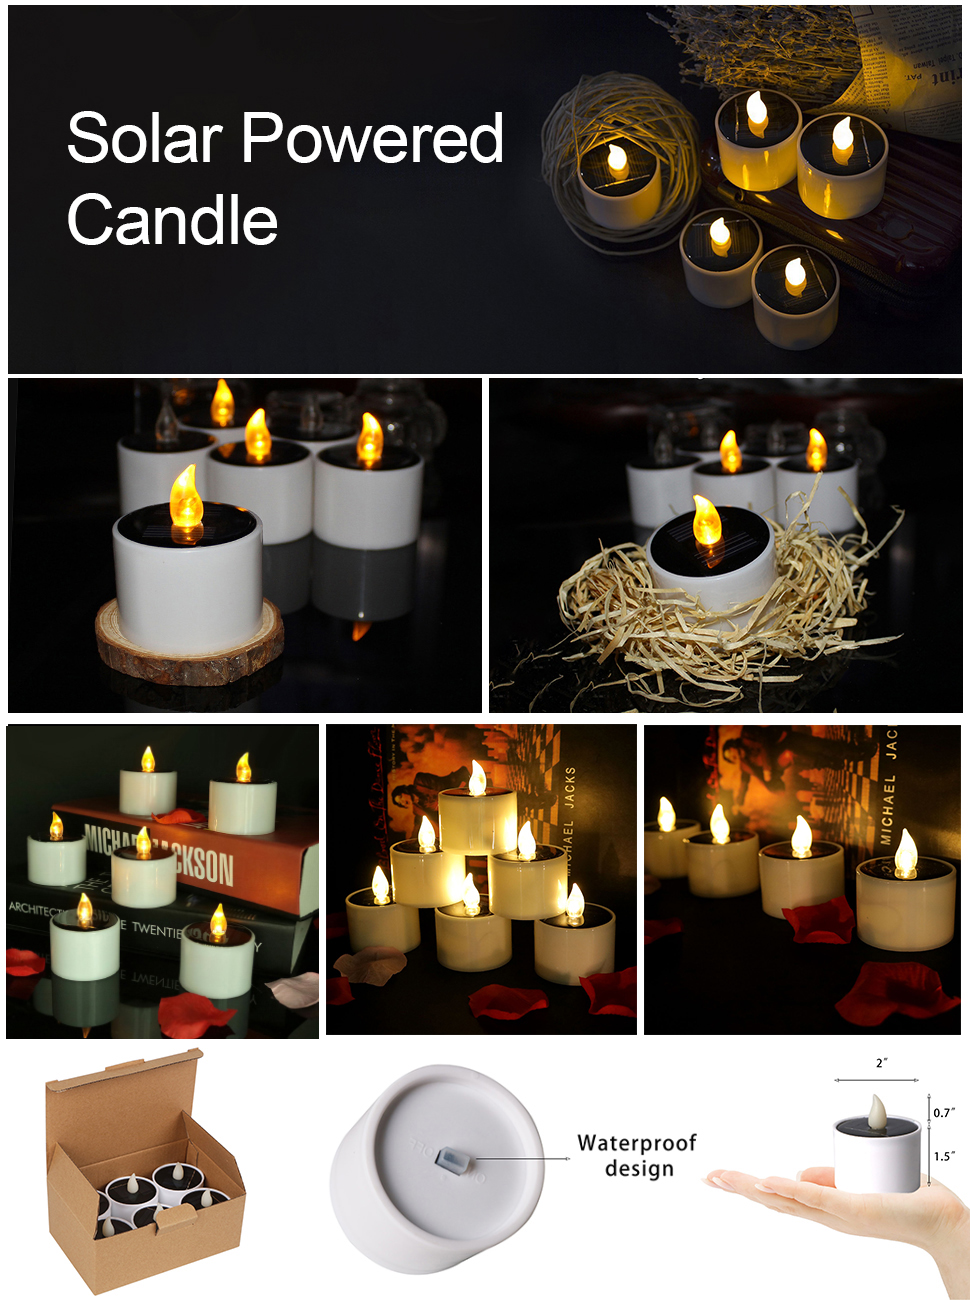 Micandle 6 Pack Outdoor Solar Candles/Long Lasting Using,Flameless Solar Tealights Candles for Camping,Home,Window,Yard Decor(Charged 4-8 Hours Can Use 5-10 Hours) in Yellow